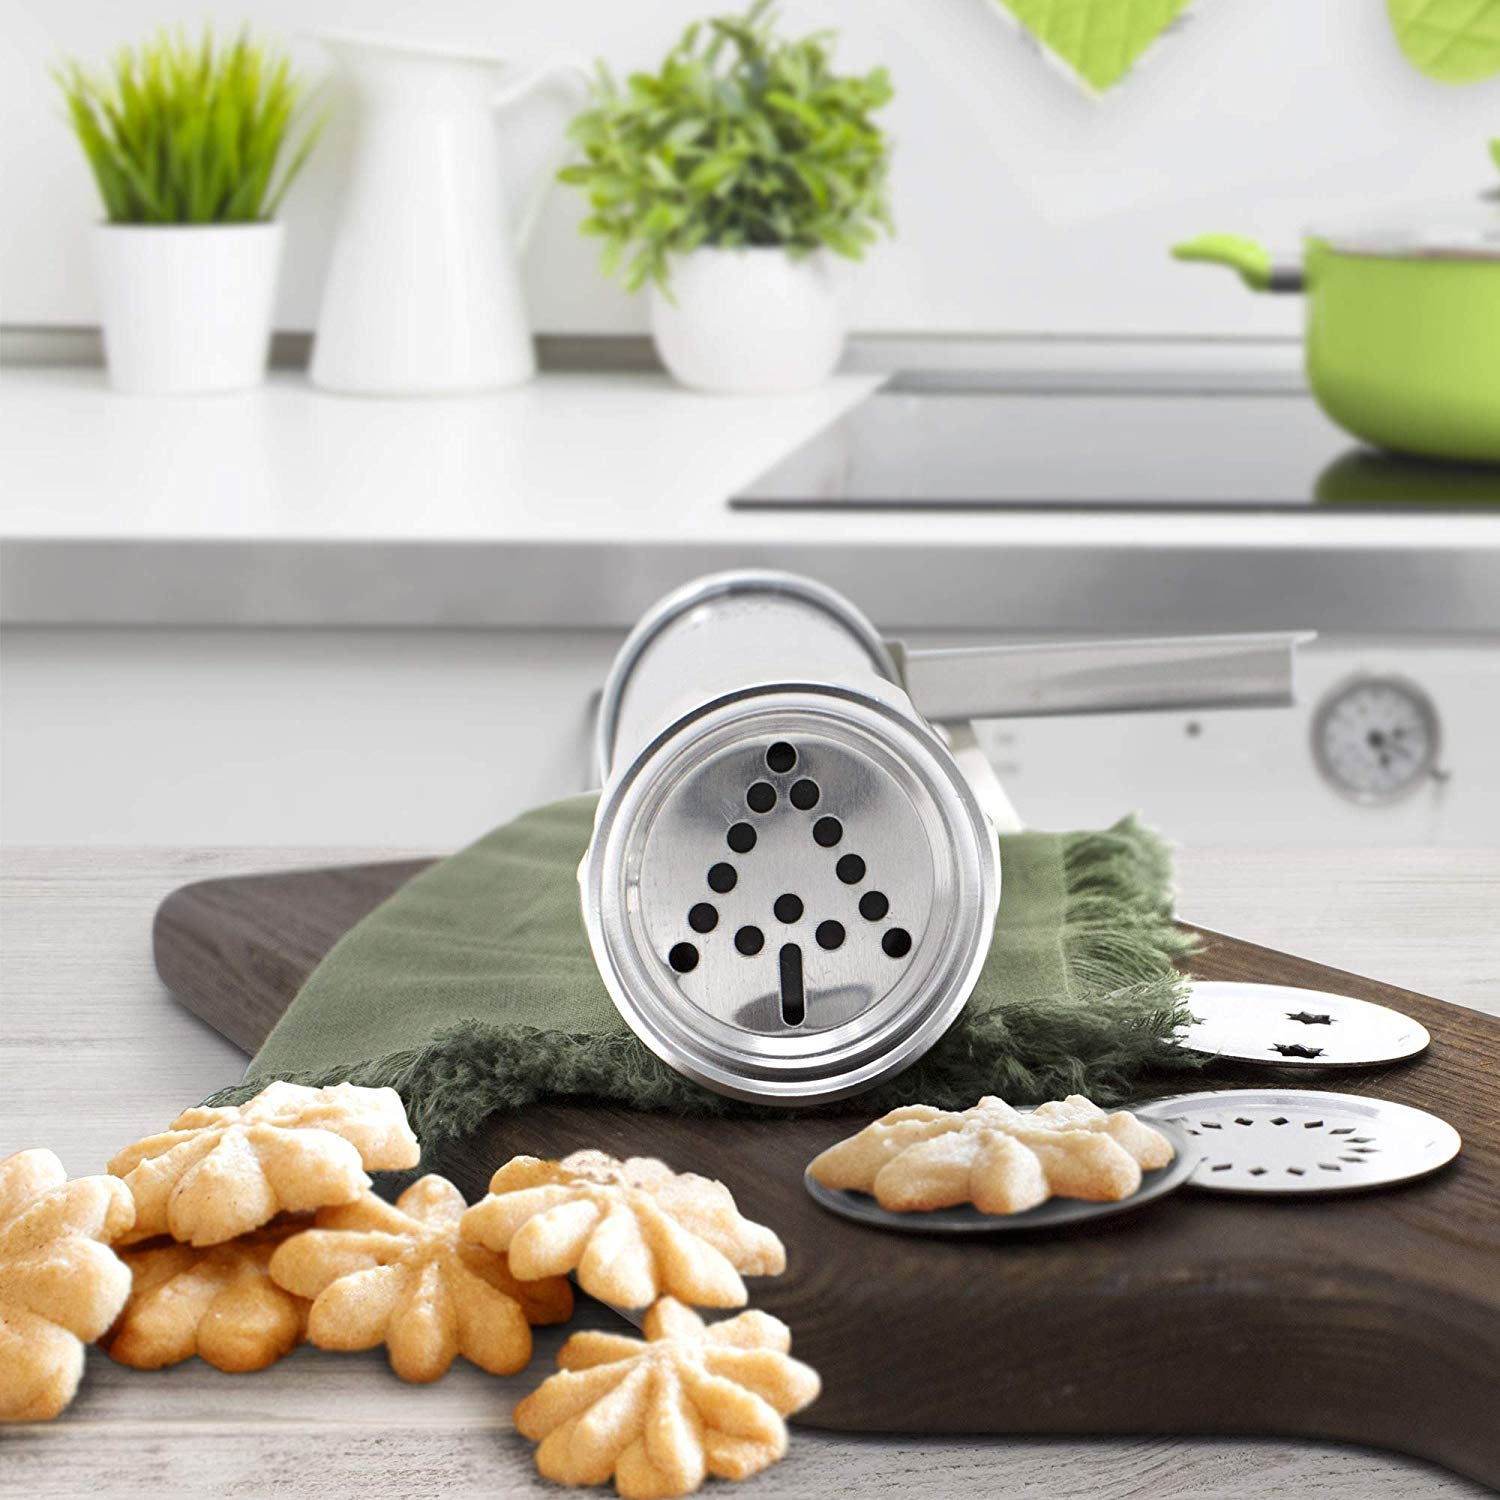 Press Cookie Maker Set with 20 Discs and 4 Icing Tips